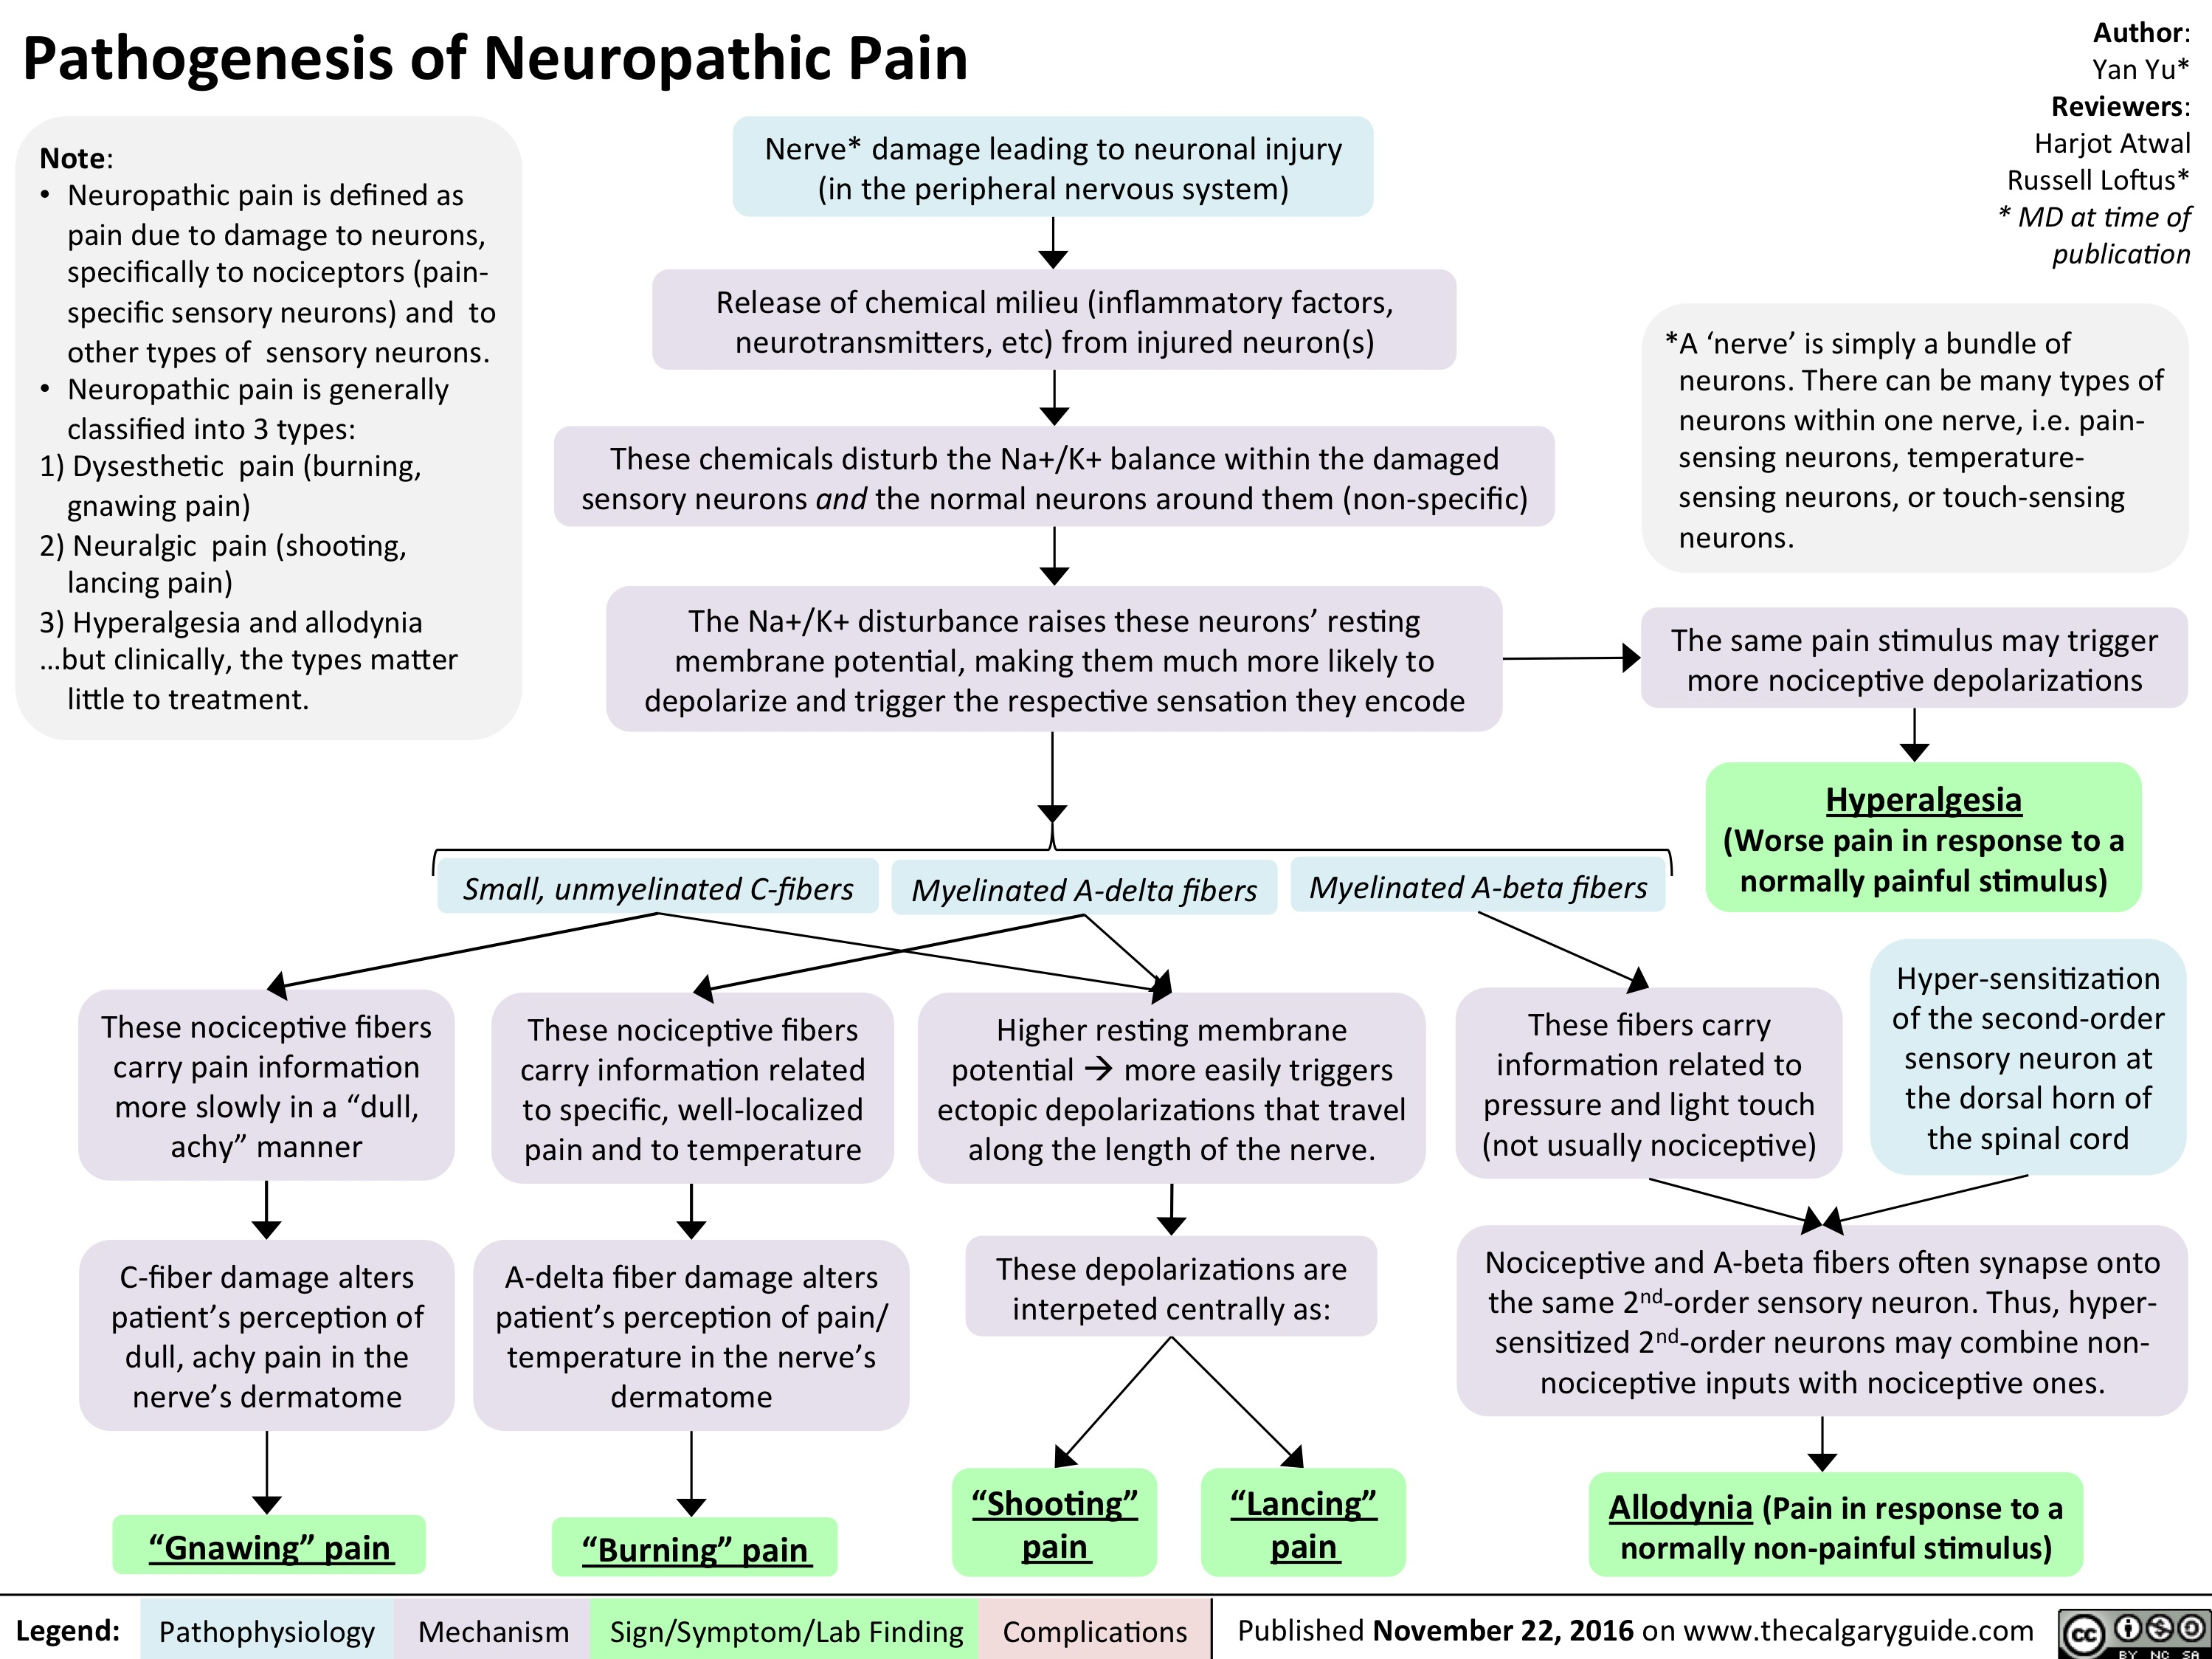 pathogenesis-of-neuropathic-pain